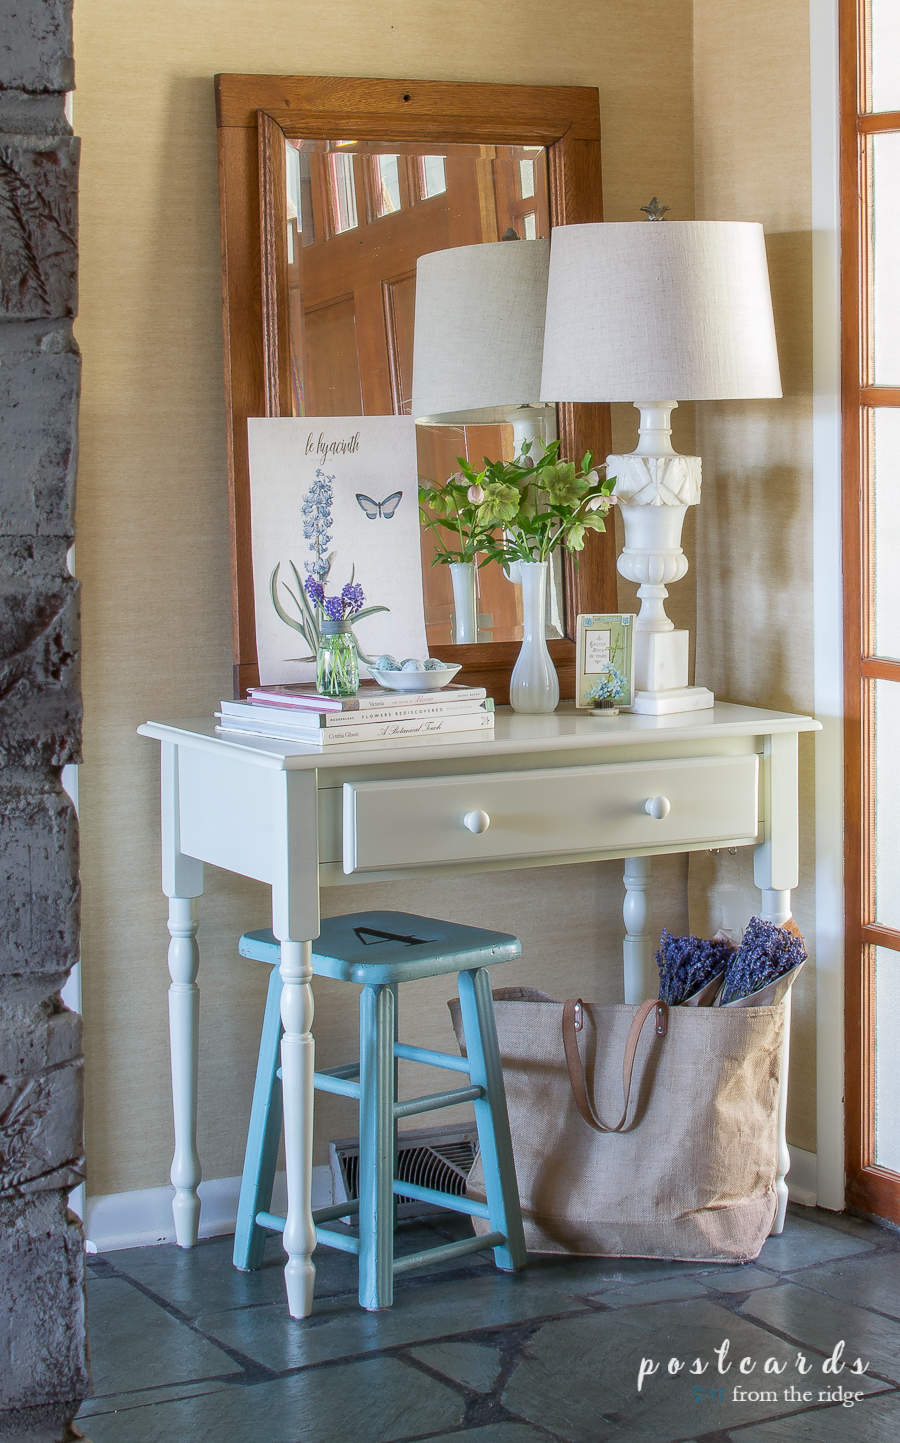 blue stool and white desk with decor in entry